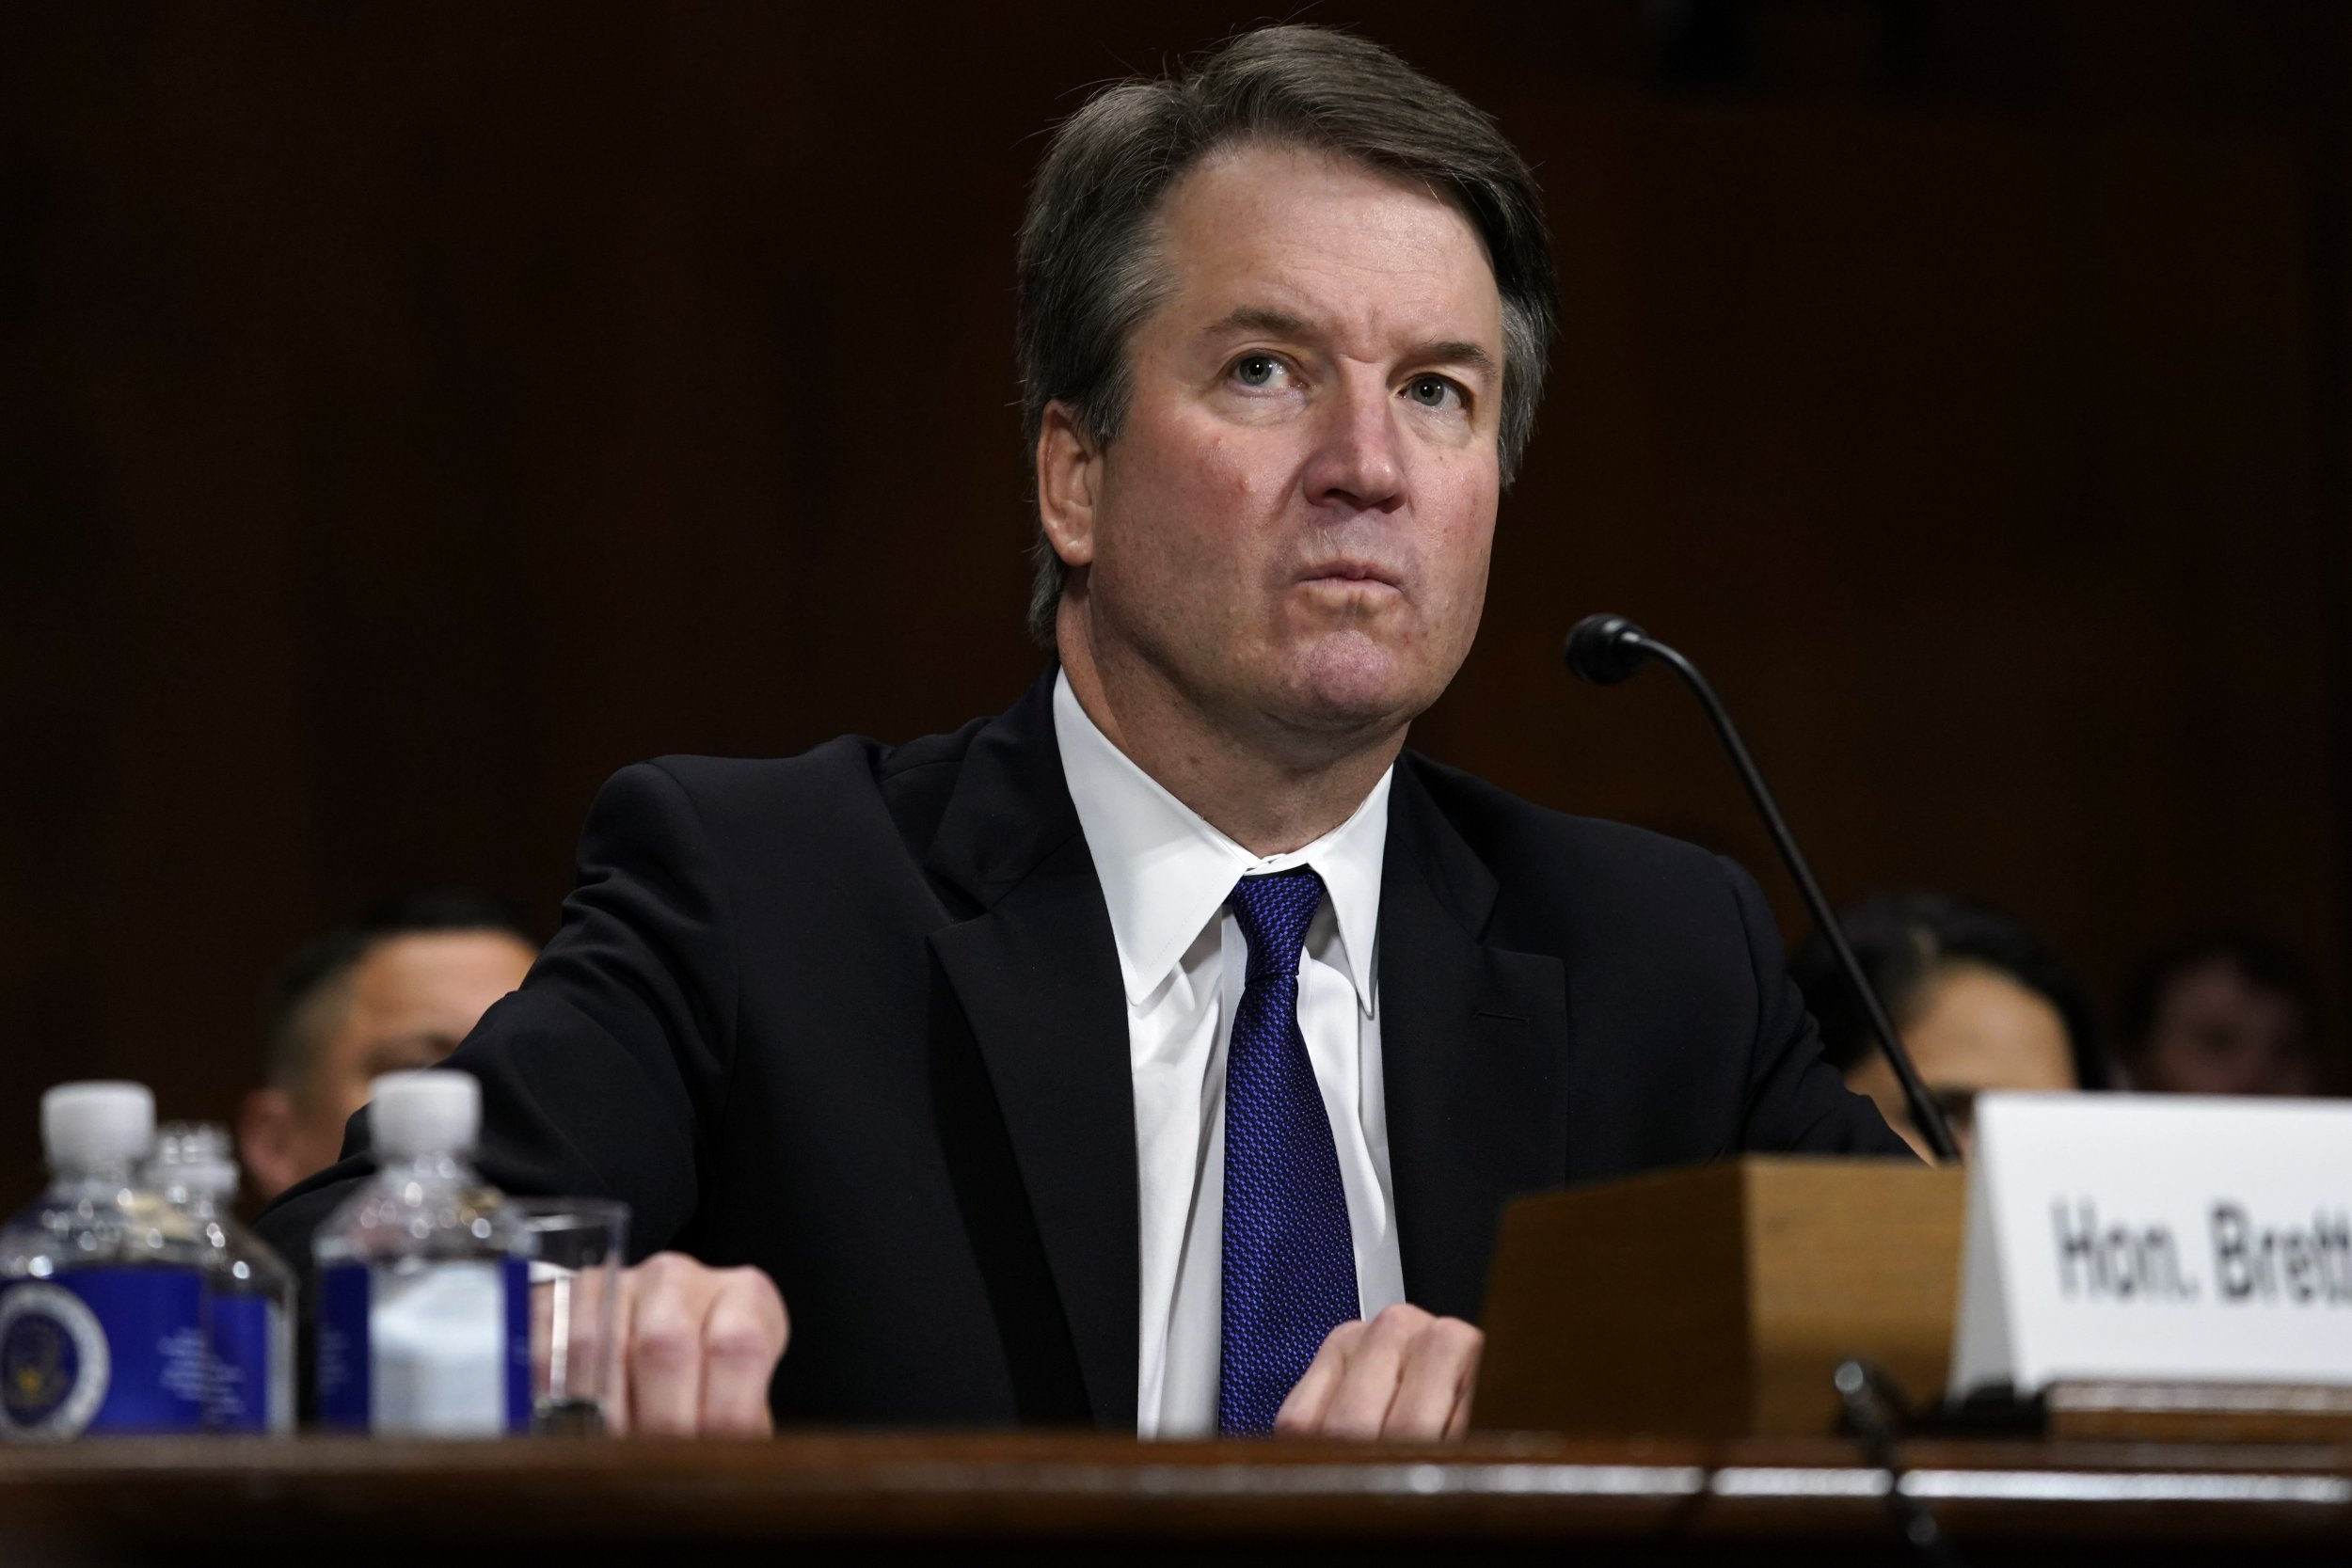 Could Brett Kavanaugh Be Impeached? Democrats Appear to be Gearing up for Possible Impeachment Process